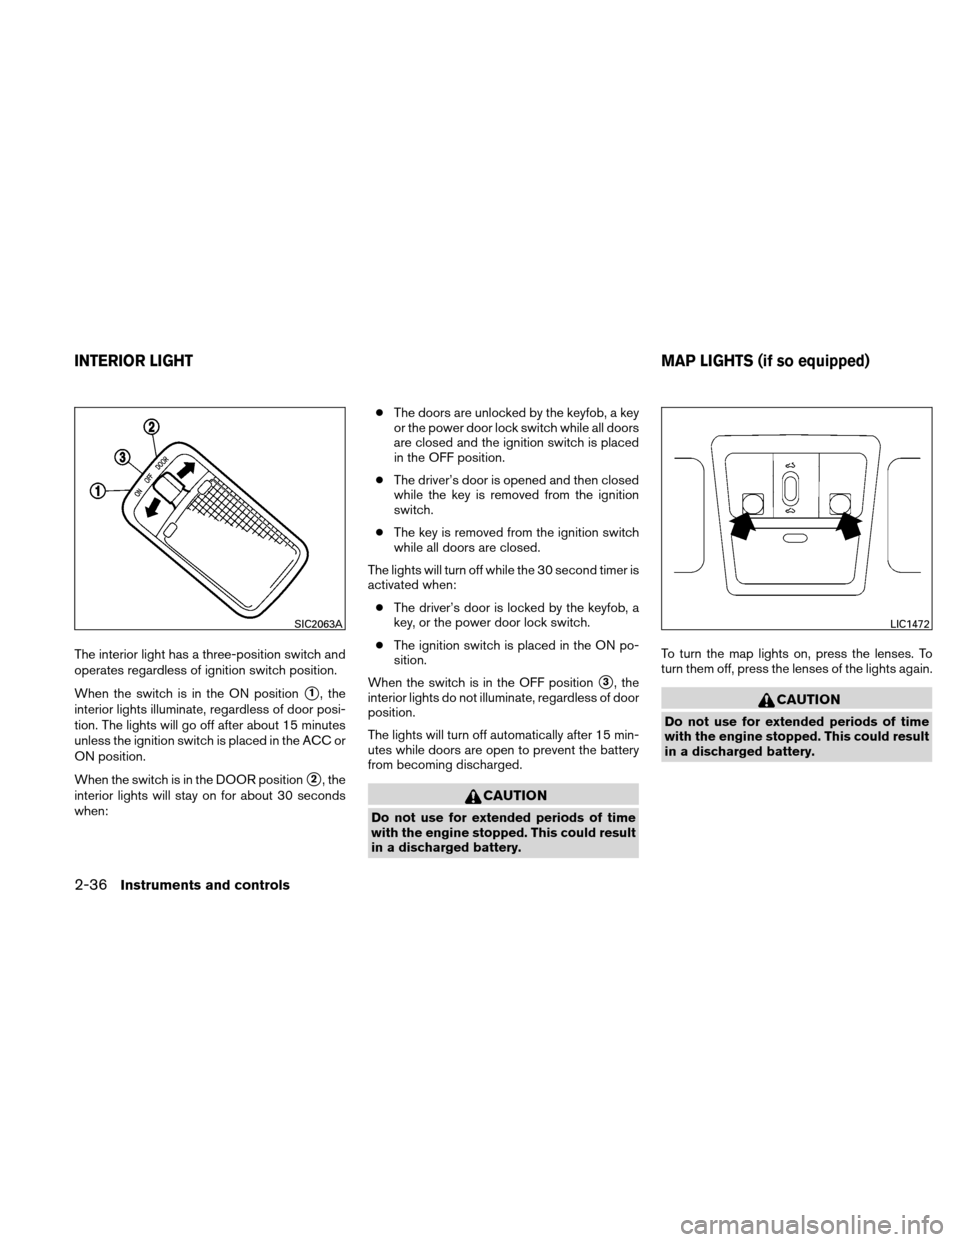 NISSAN VERSA HATCHBACK 2011 1.G Owners Manual, Page 113